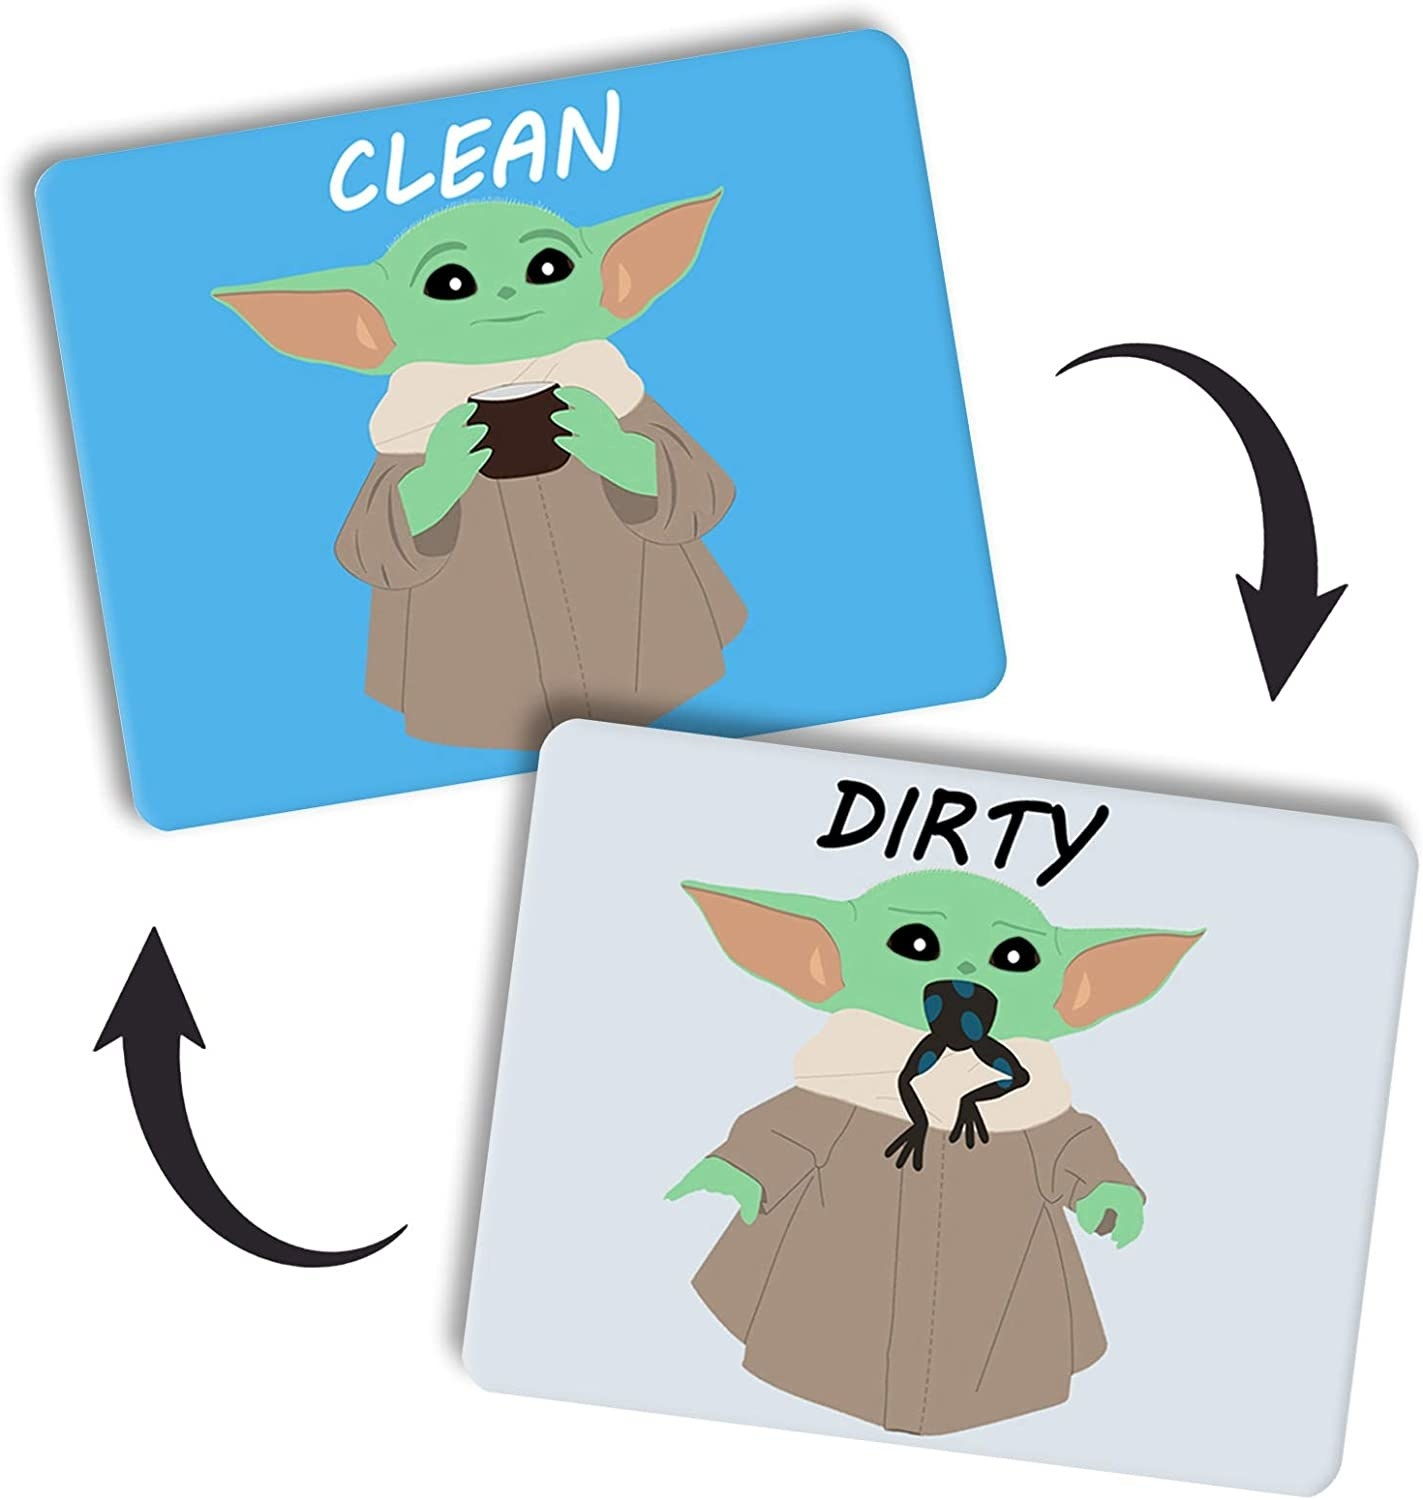 a magnet with two sides, one that shows baby yoda holding a mug and the other with a frog in his mouth